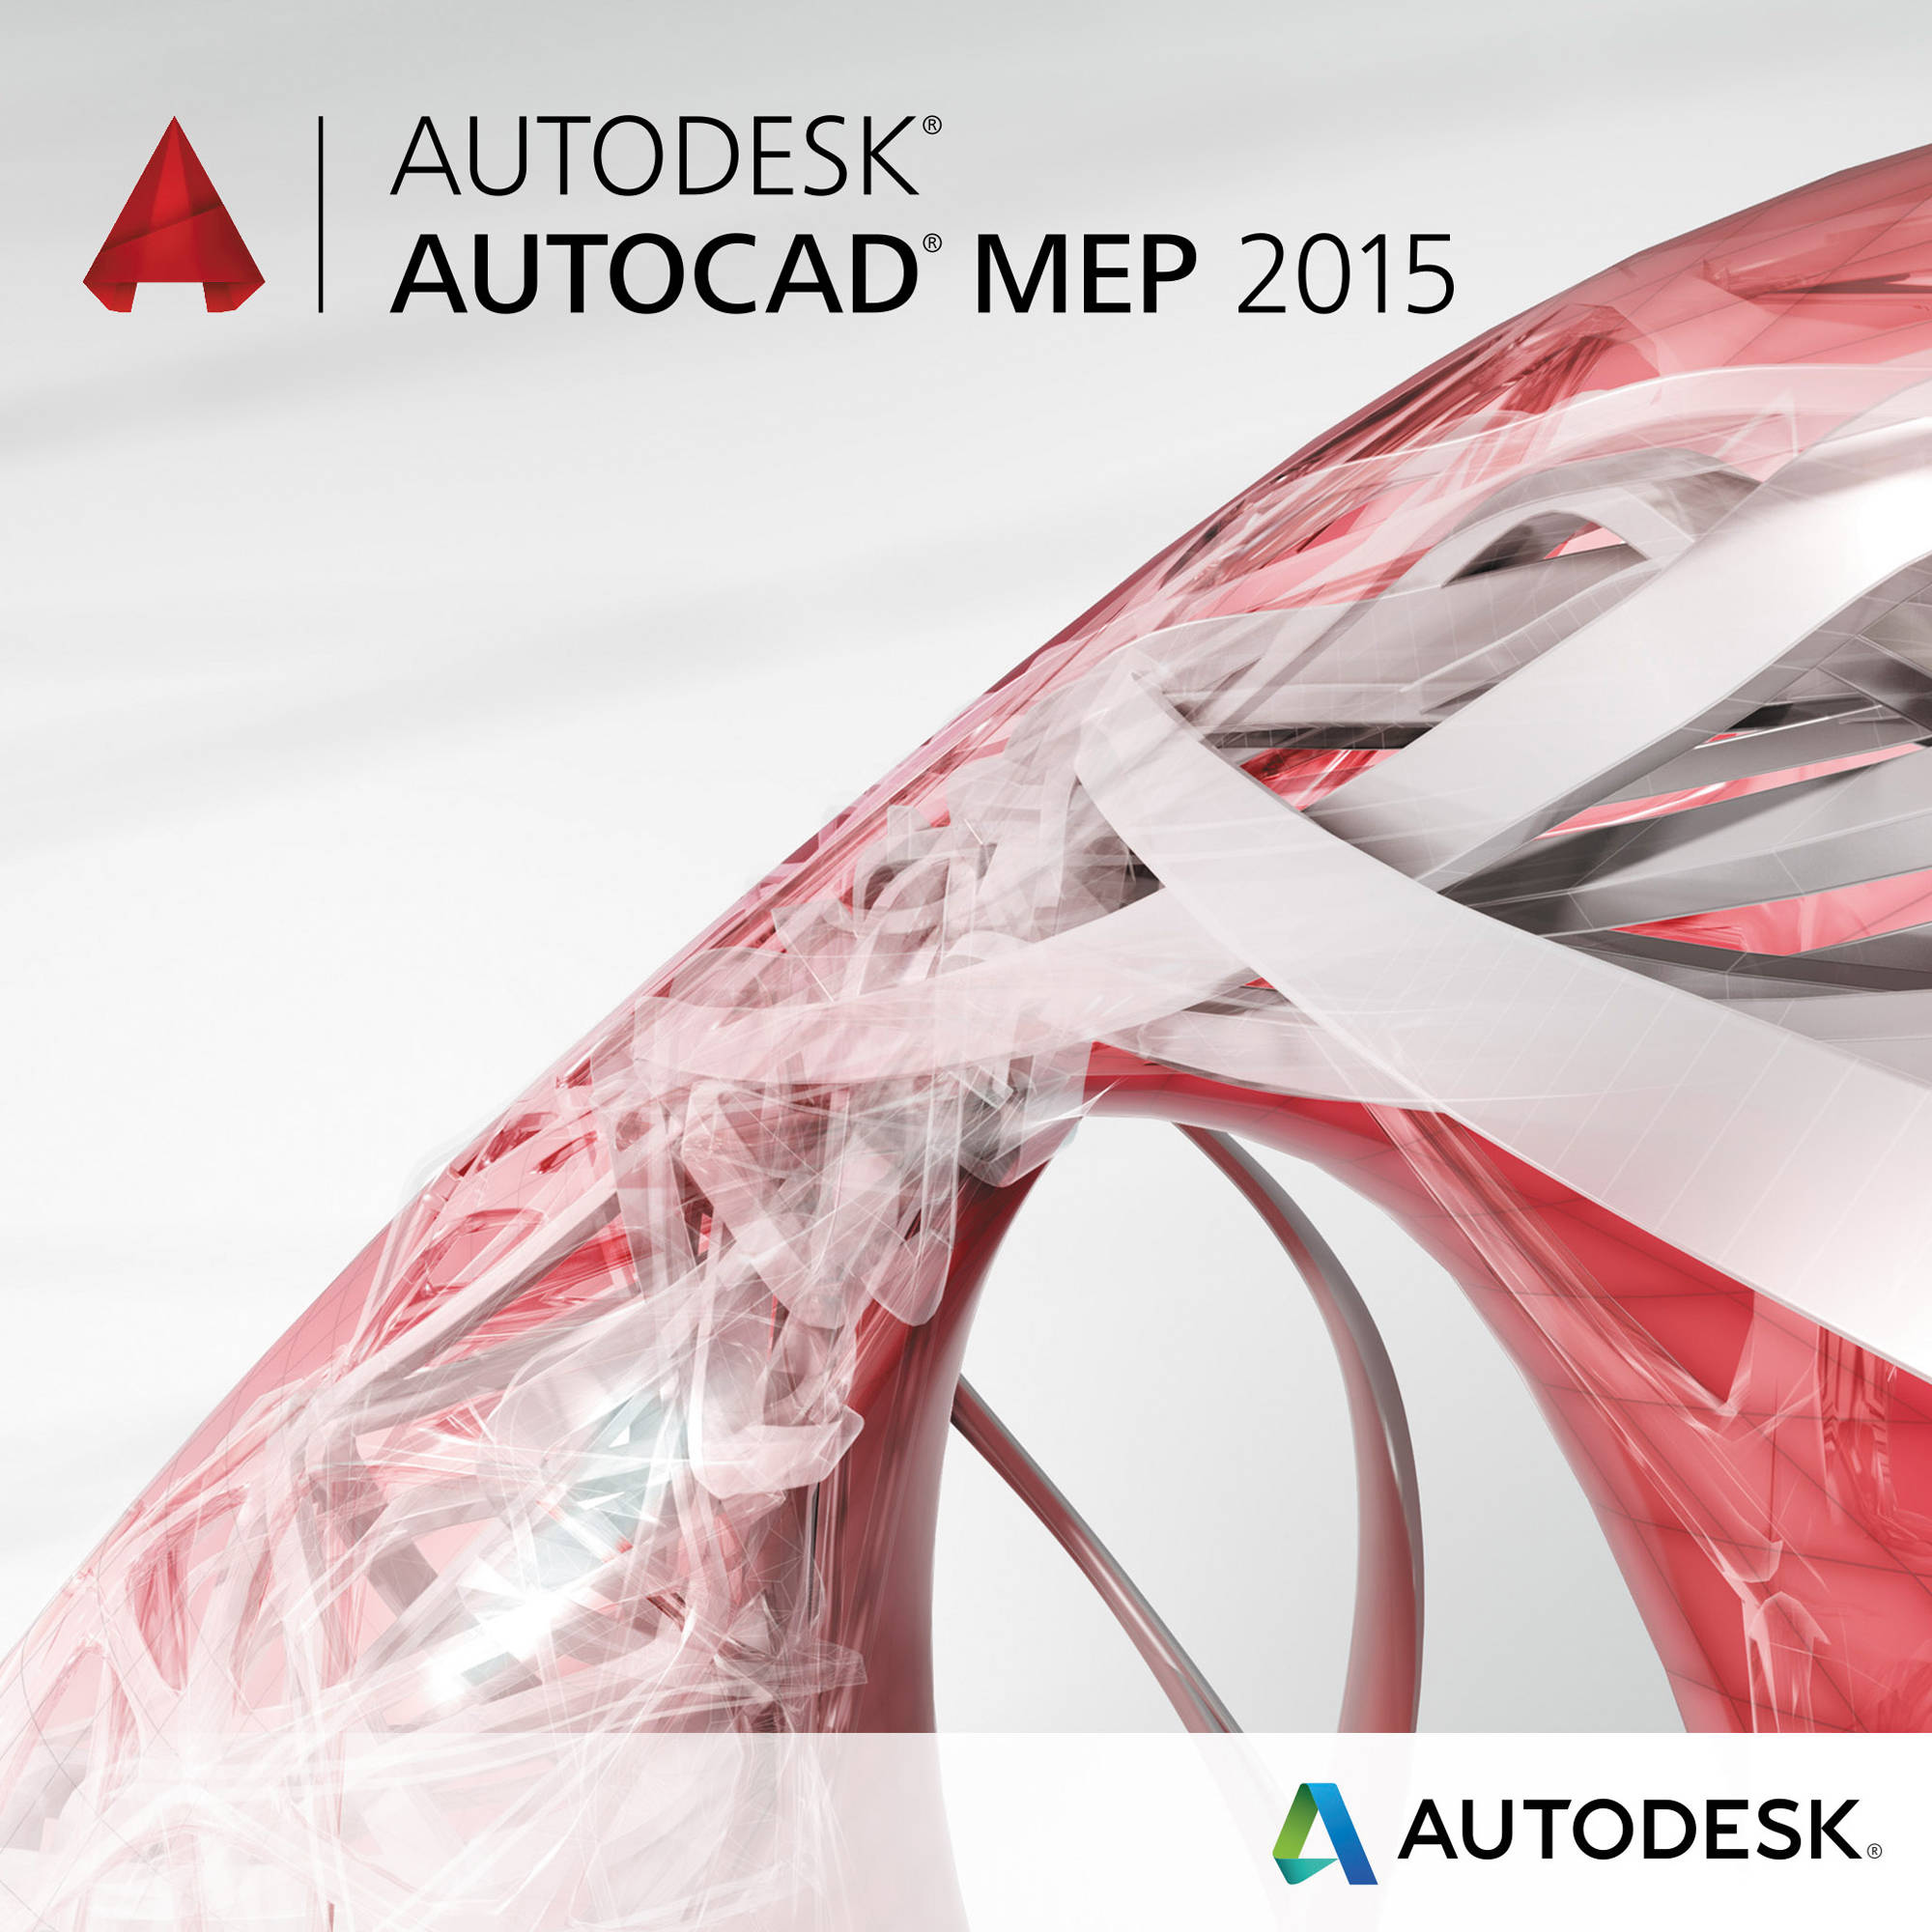 Home Design Software For Mac Free Autodesk Autocad Mep 2015 Download 235g1 Wwr111 1001 B Amp H